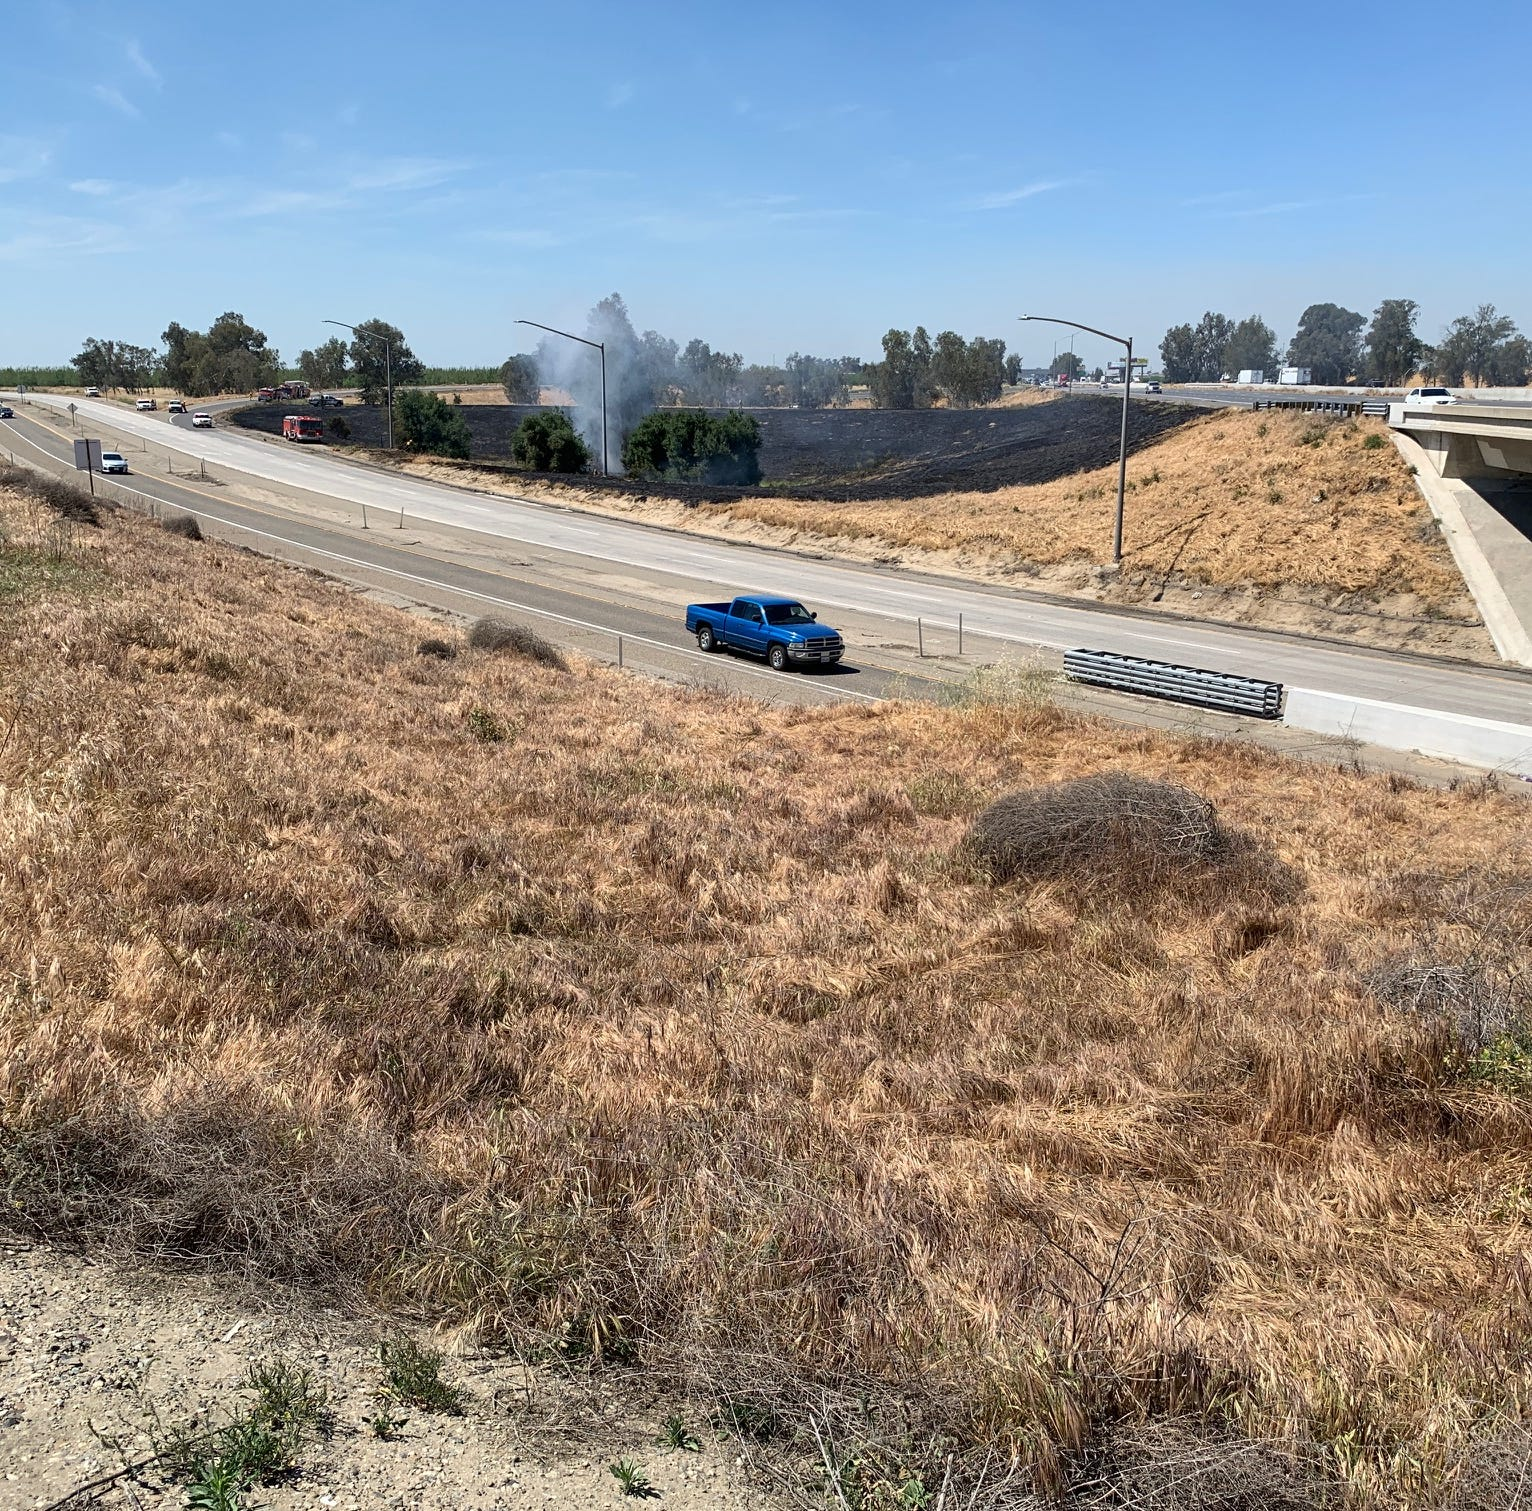 BREAKING: Brush fire forces firefighters to close portions of Highway 198